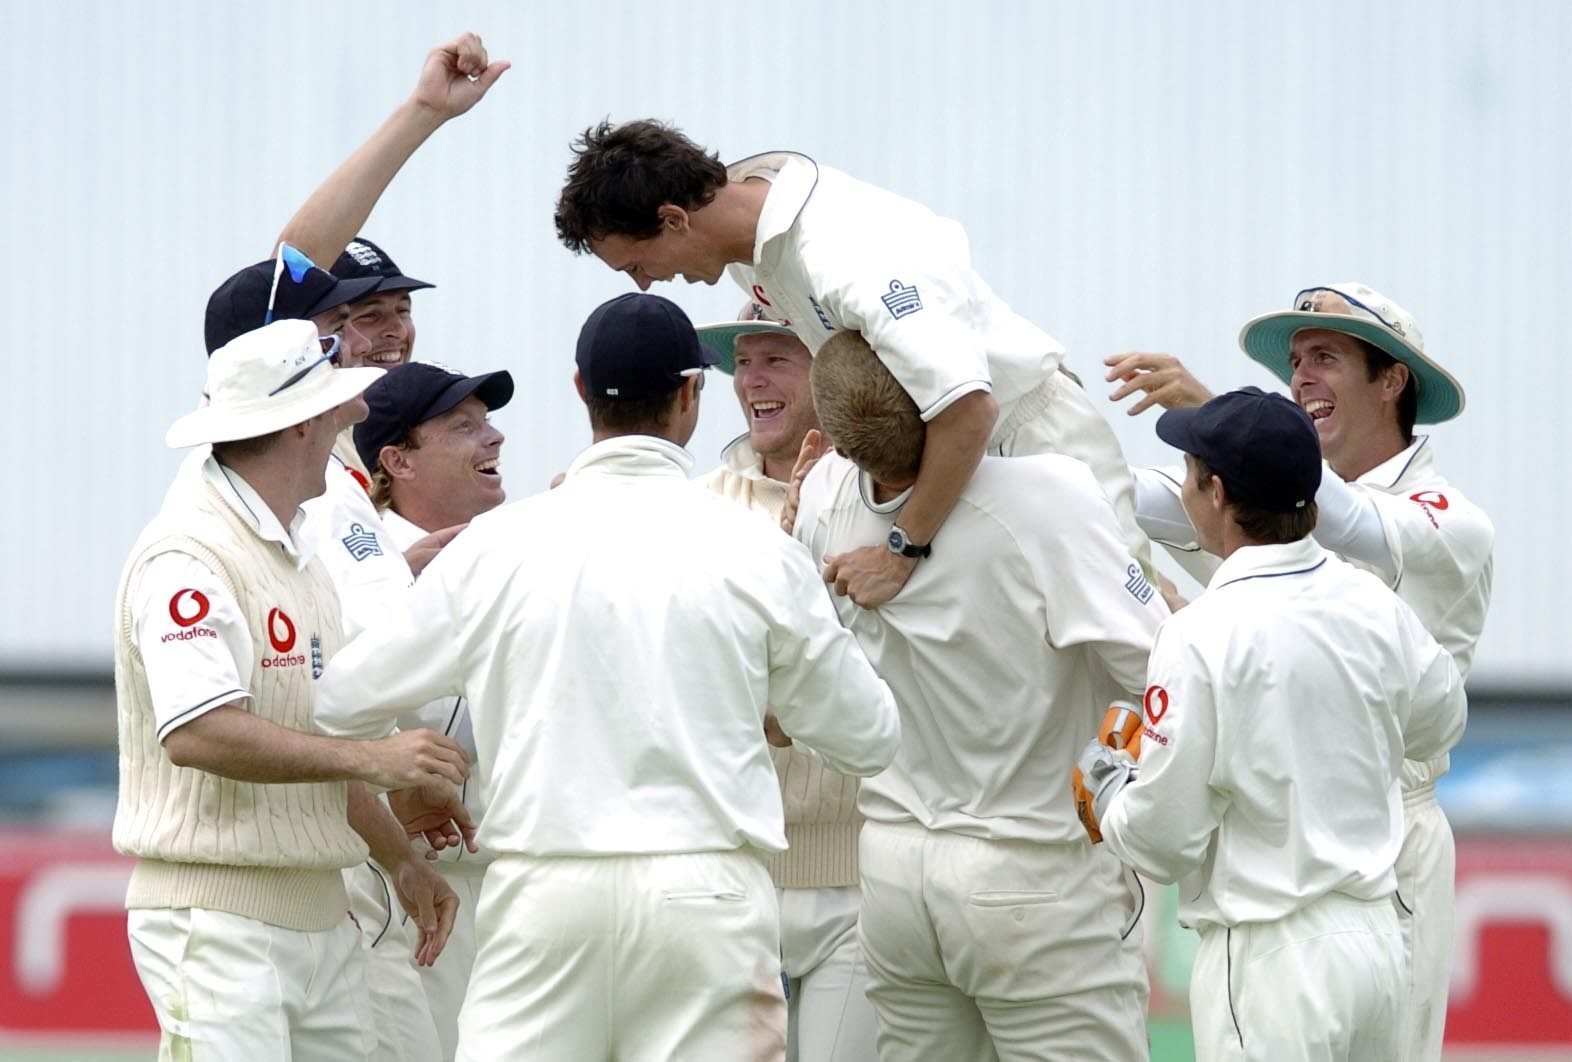 Cricket - Gary Pratt is mobbed by his teammates during his Ashes run-out of Ricky Ponting.